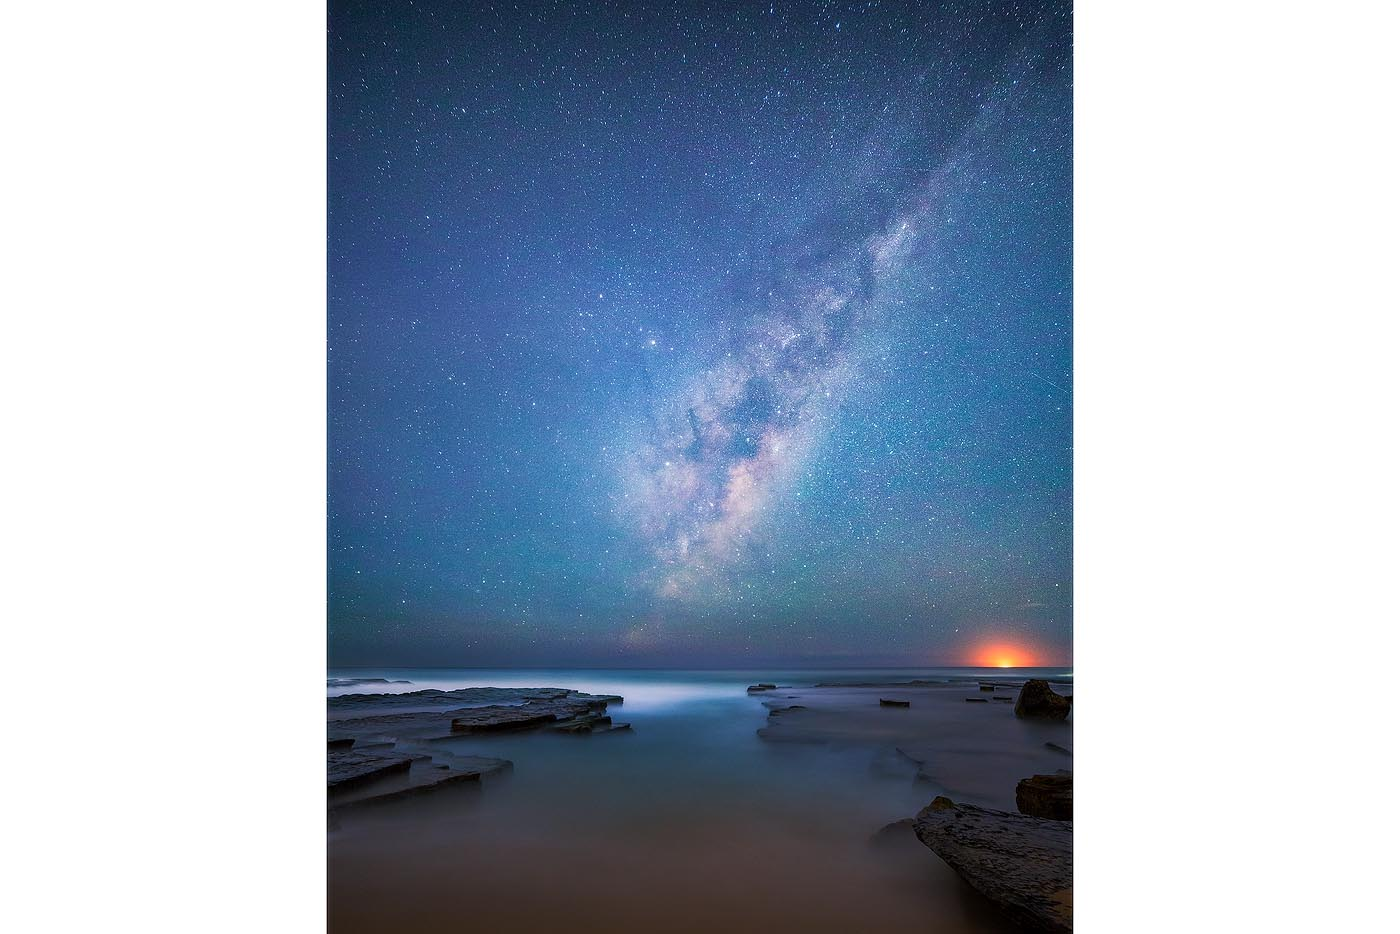 Turimetta Milky Way Sydney Australia New South Wales